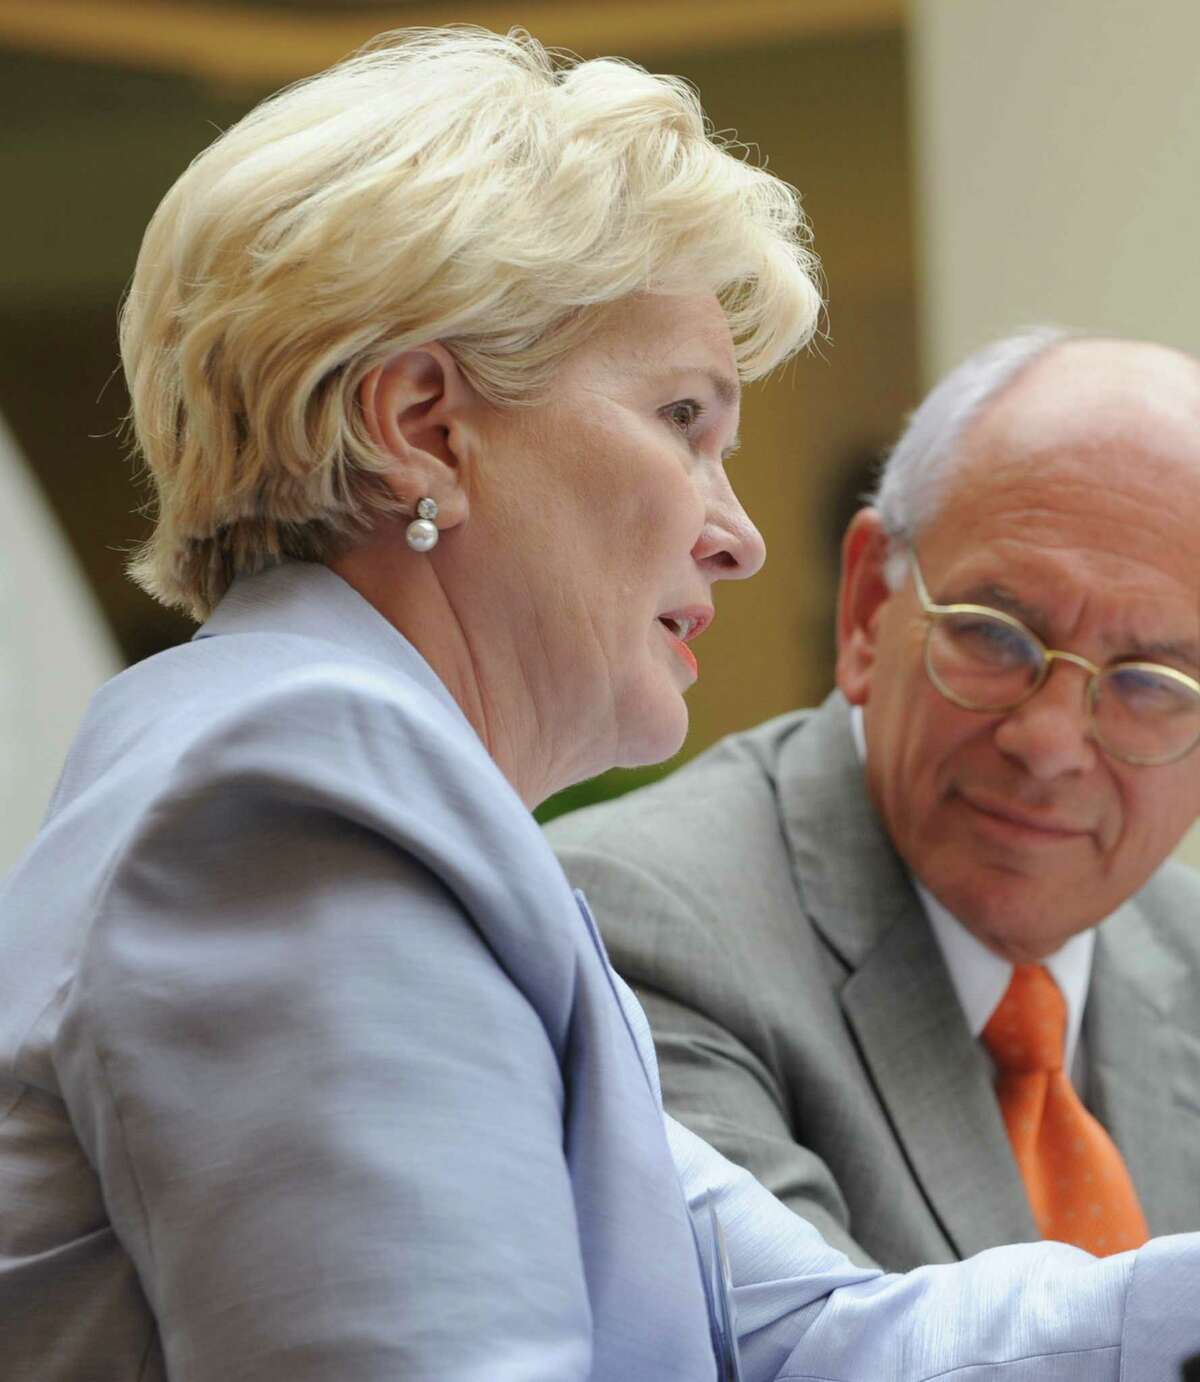 Deborah Wince-Smith, president of the Council on Competitiveness, left, and Congressman Paul Tonko participate in a meeting of the Council on Competitiveness Tuesday morning, Aug. 13, 2013, at GE Global Research Center in Niskayuna, N.Y. (Lori Van Buren / Times Union)